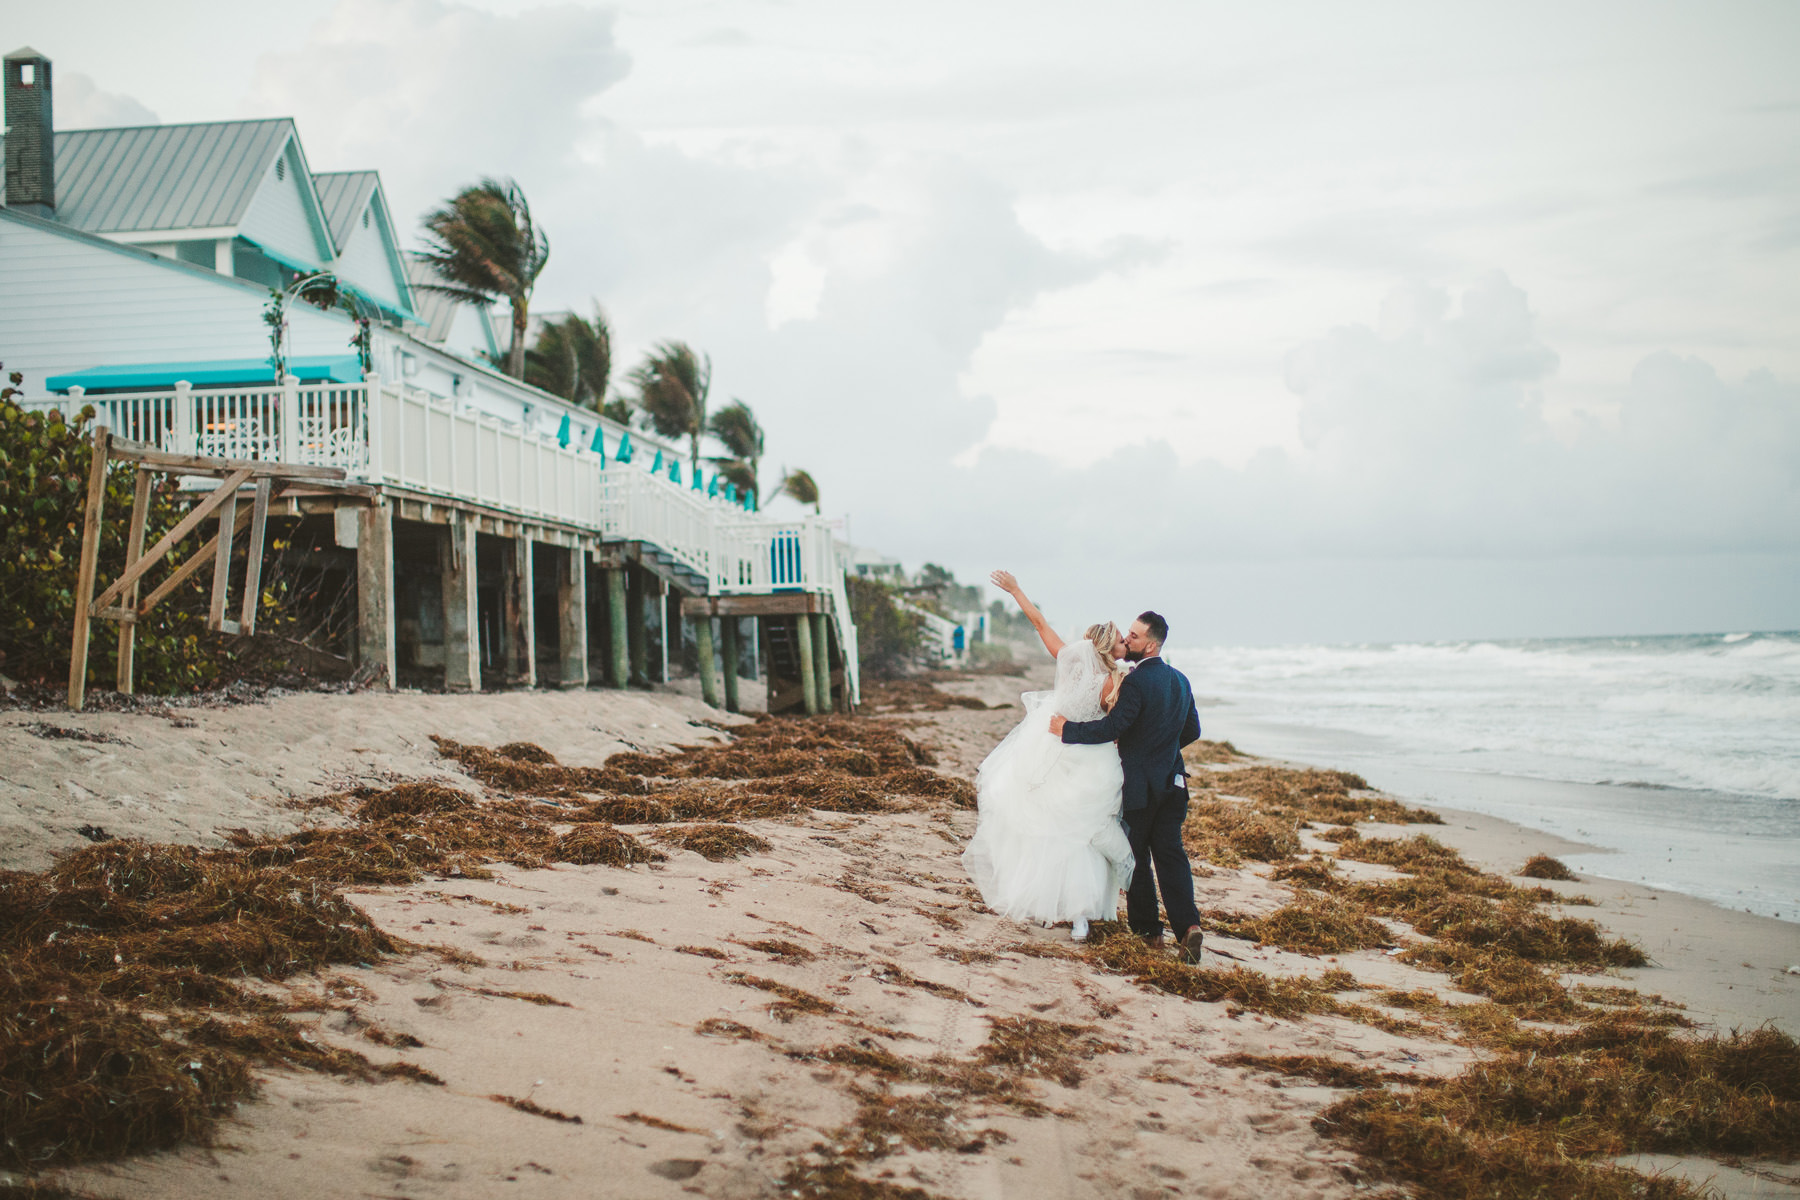 portraits-bride-groom-couple-florida-beach-wedding-tiny-house-photo.jpg